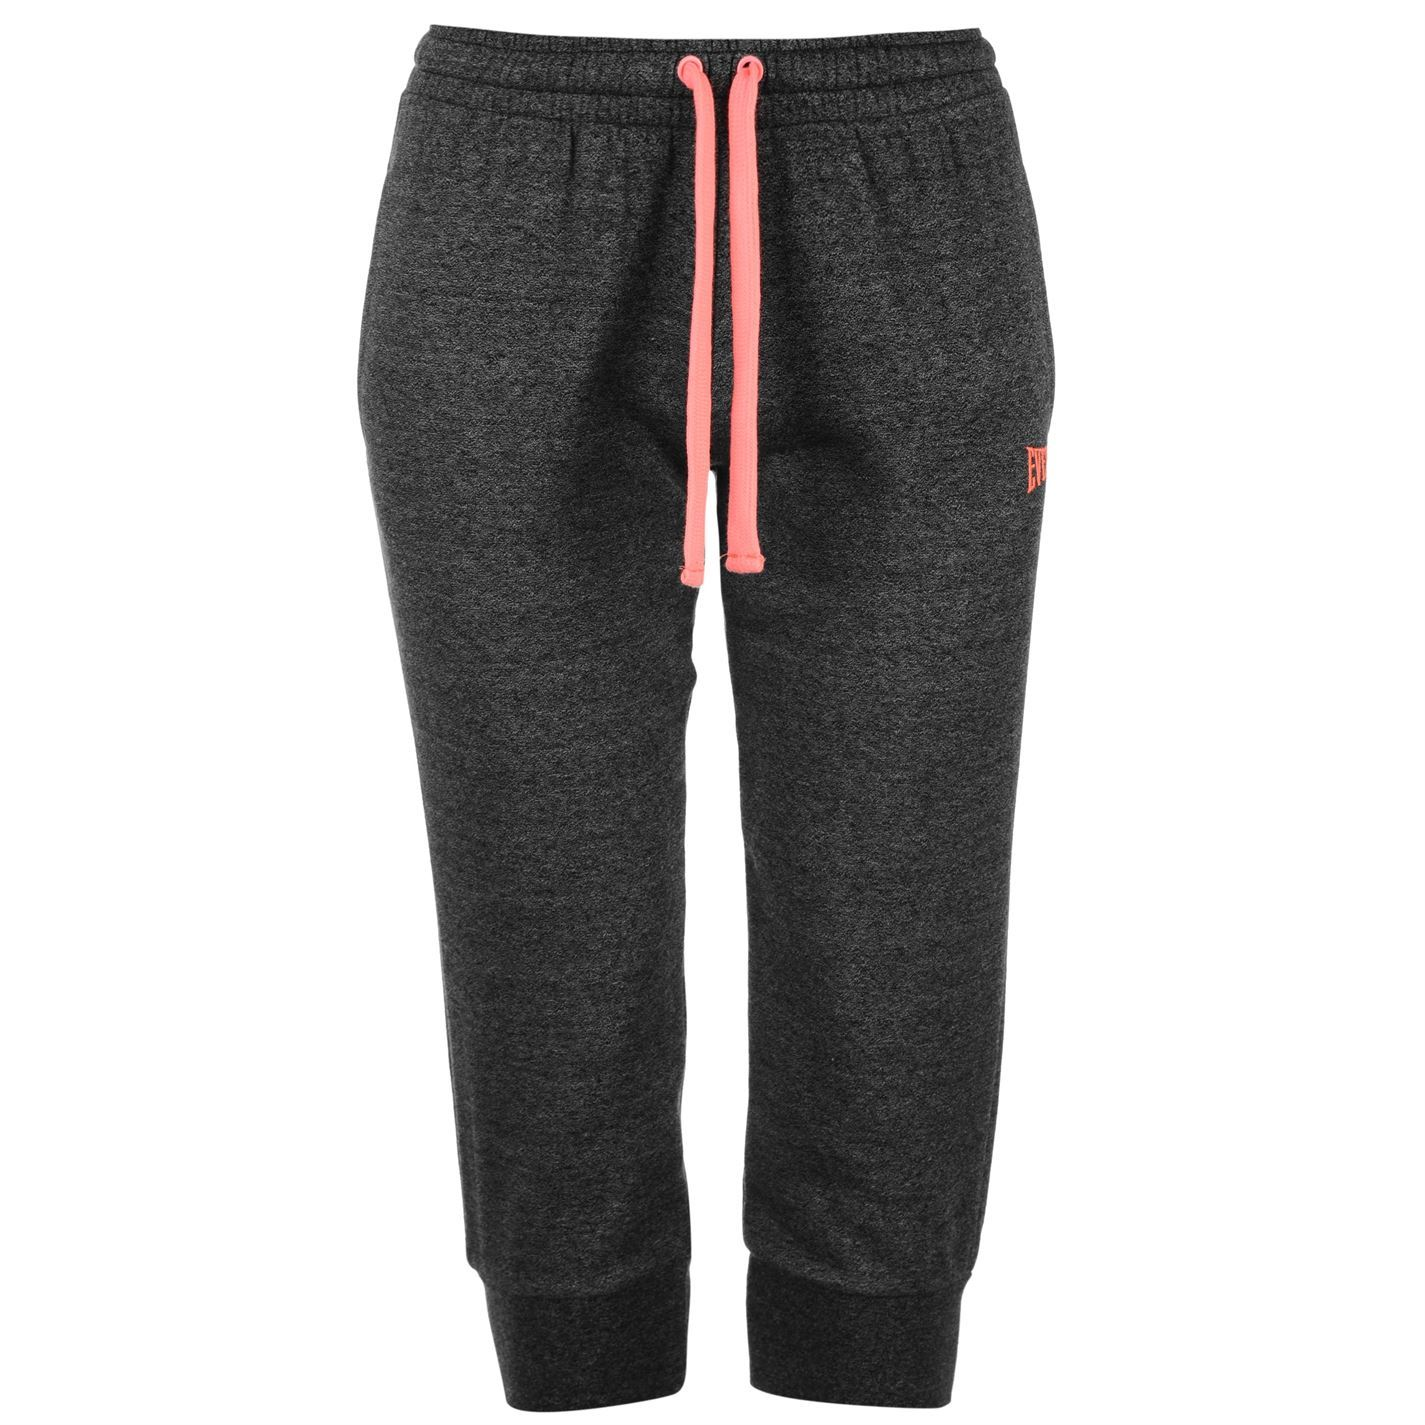 Wonderful  Quarter Interlock Pants Womens These LA Gear Three Quarter Interlock Pants Are Ideal For Relaxing Or Training In Comfort Thanks To Their Elasticated Waistband With Internal Drawstring Fastening And Three Quarter Length Legs With